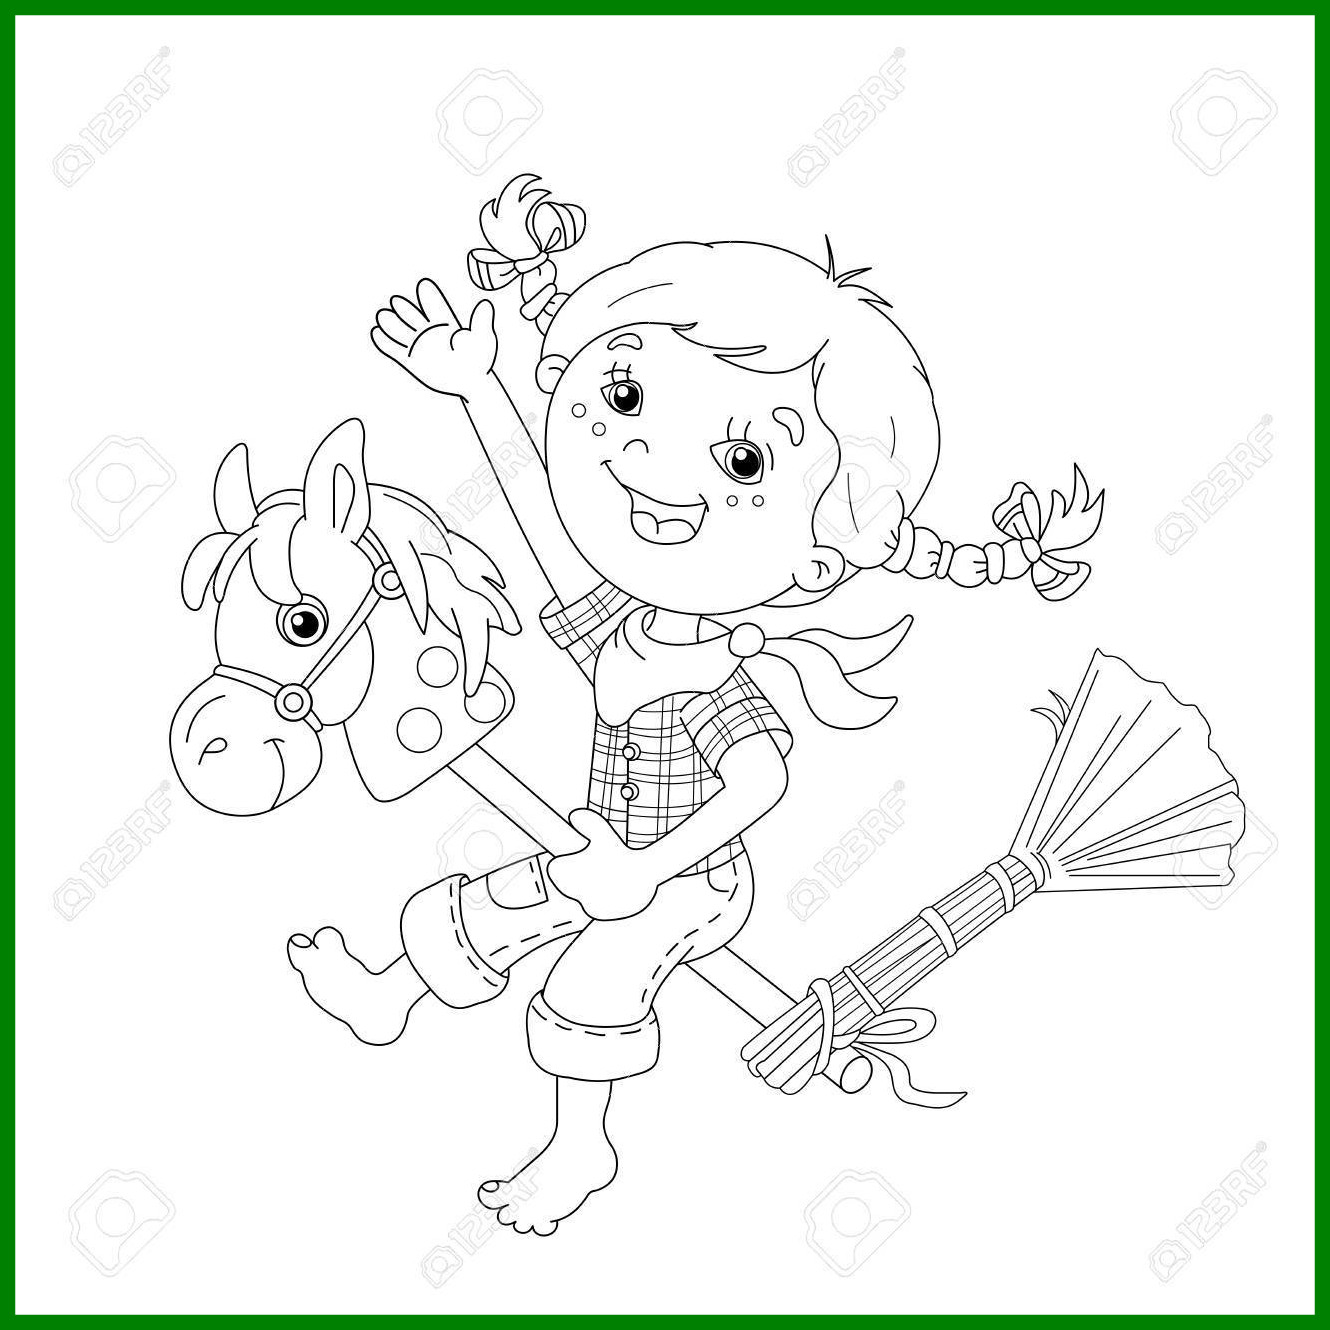 1330x1330 Fascinating Coloring Page Outline Of Cartoon Girl Playing Cowboy